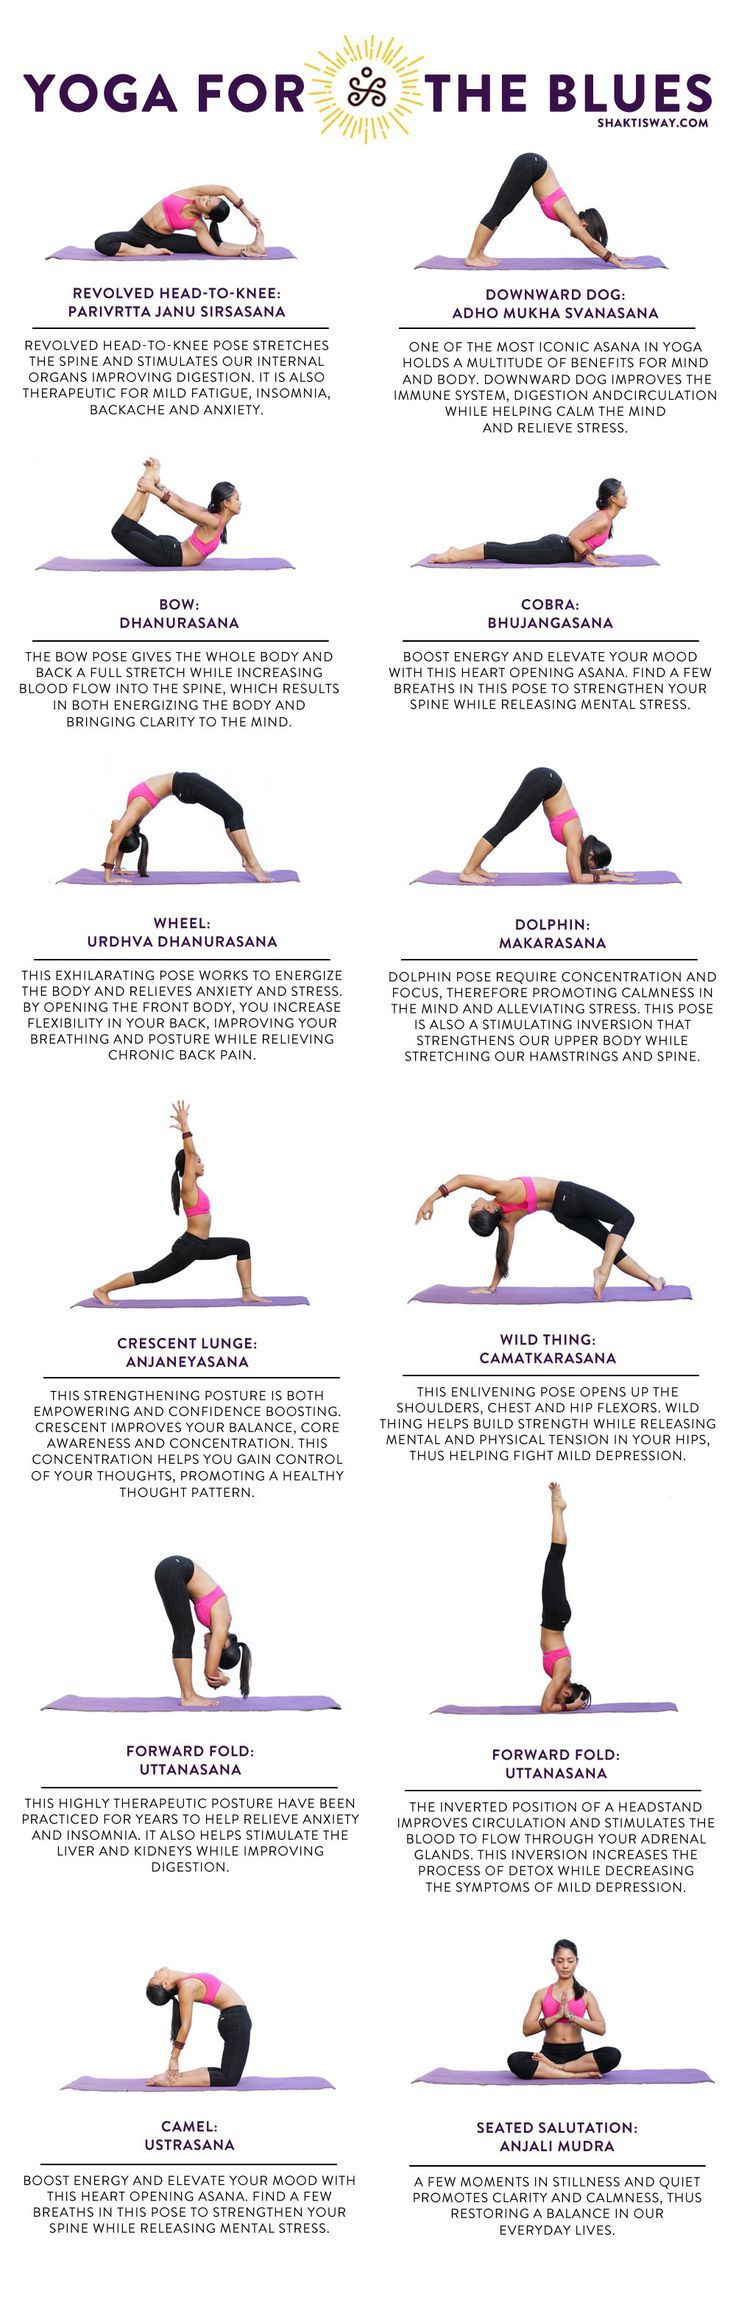 Got the blues? Yoga poses for mental health.